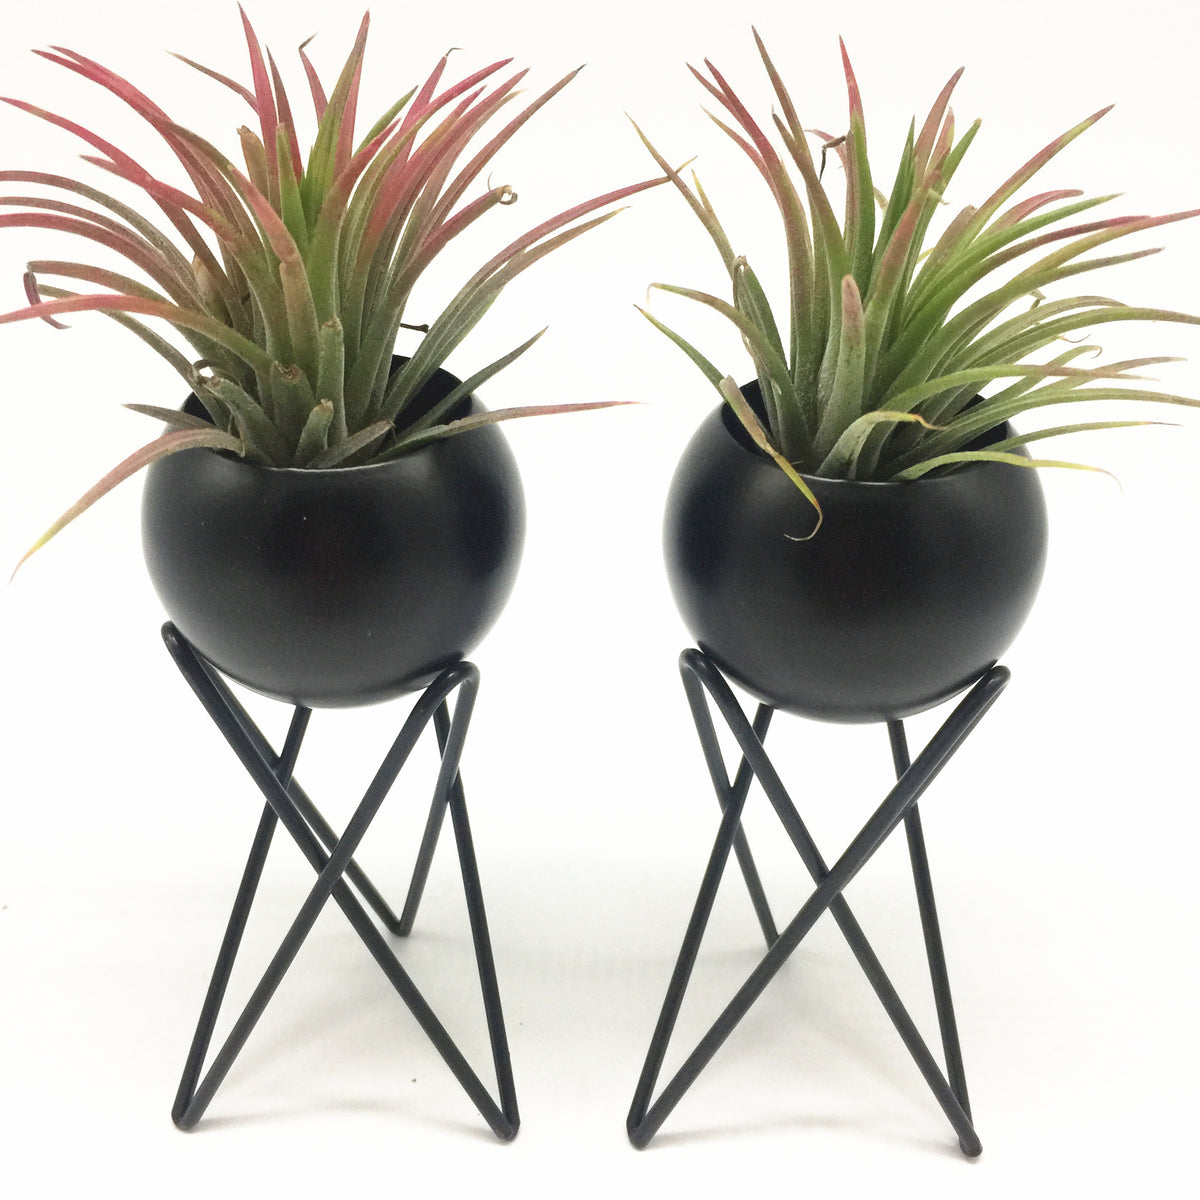 Pack of 2 Tabletop Standing Air Plant Holder Air Plant Stand Air Plant Tillandsia Container